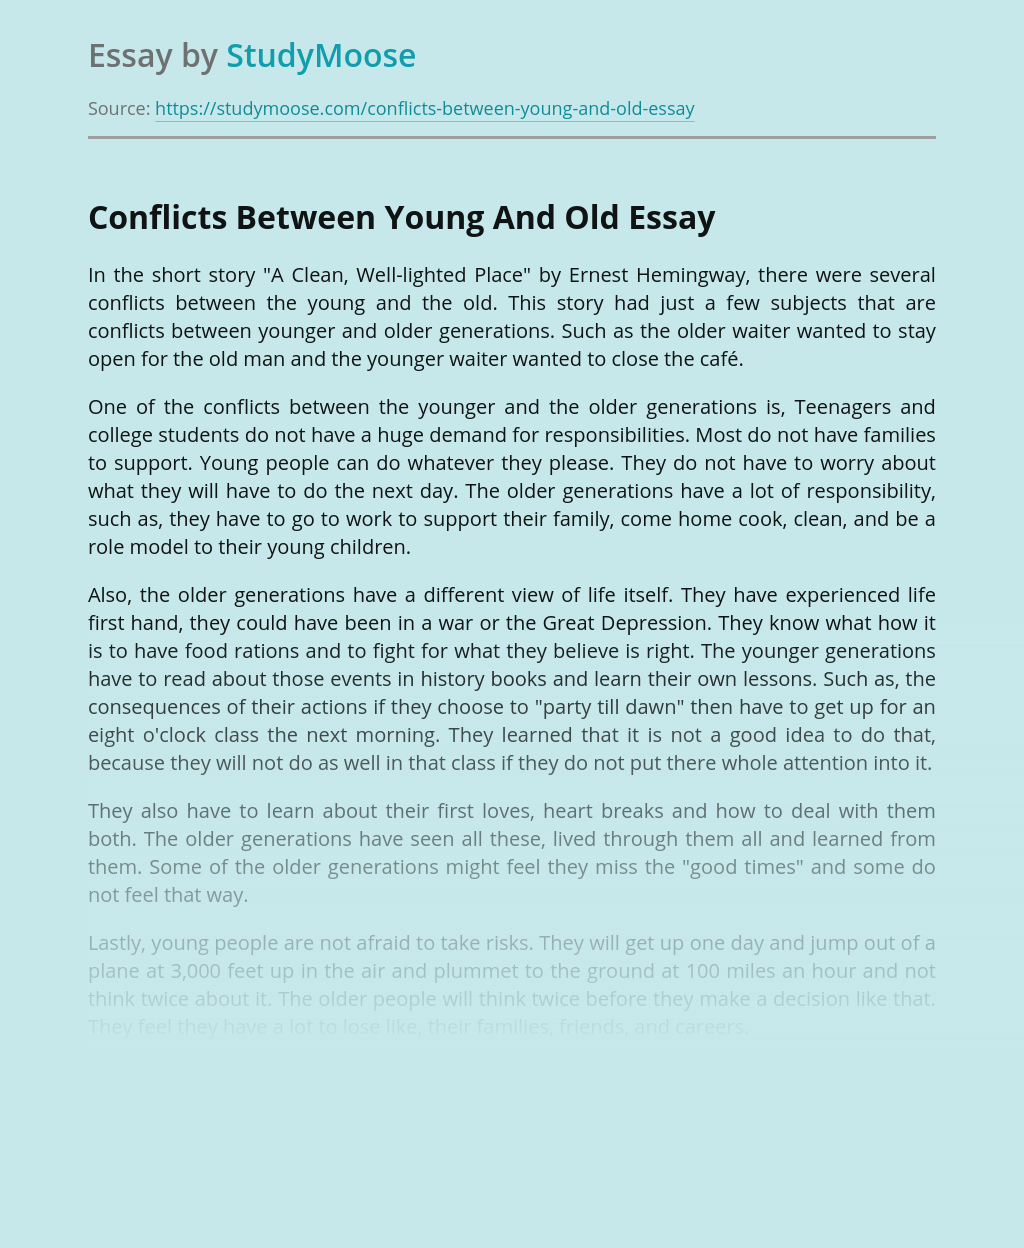 Conflicts Between Young And Old